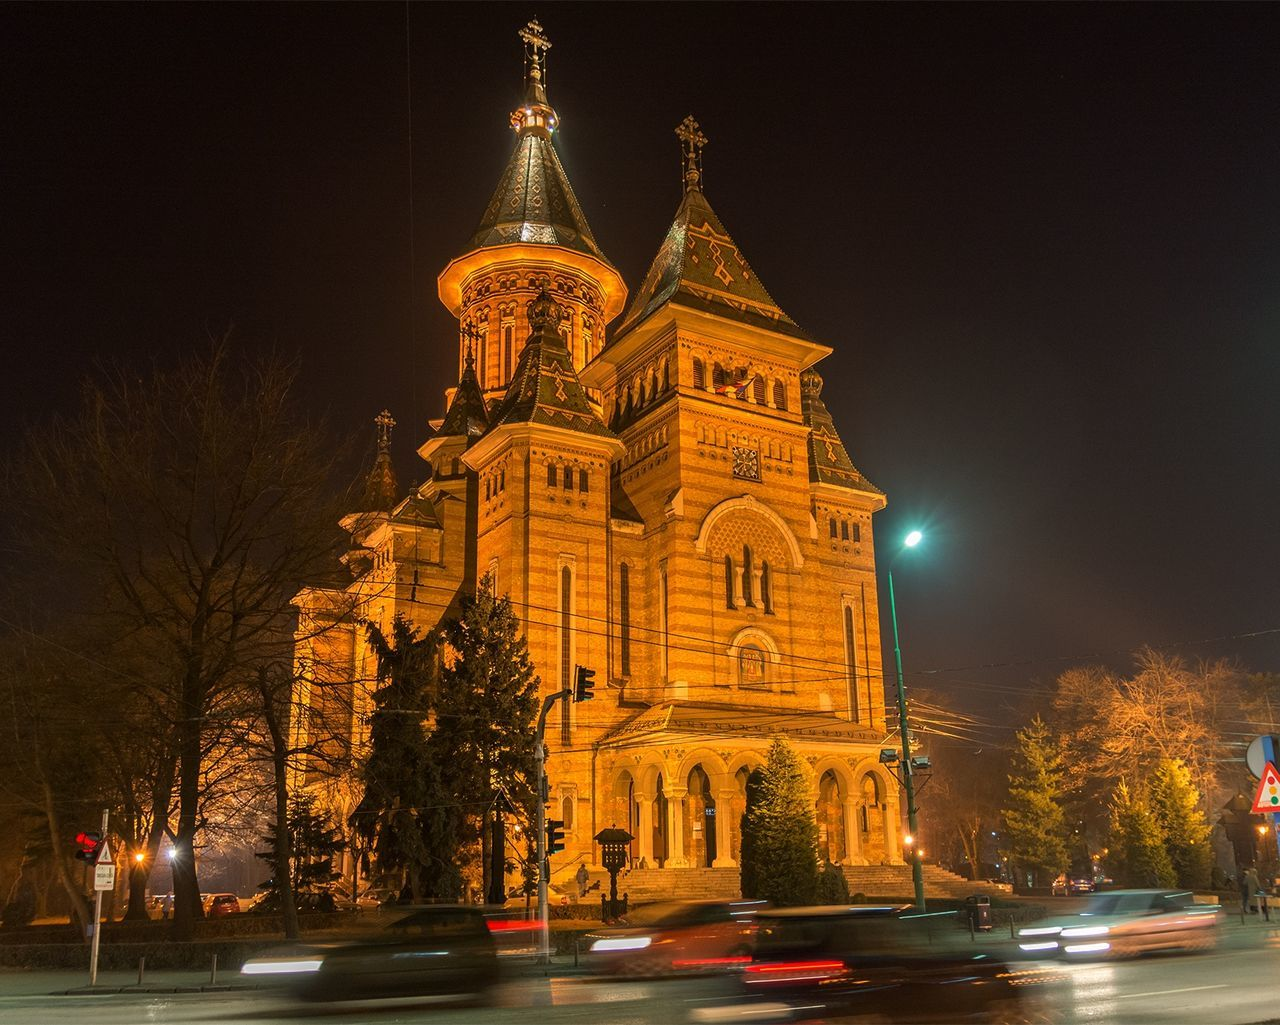 Timisoara Cathedral Orthodox Church Relegion Architecture Building Night Lights Night Photography Street Cars Cityscape City Romania Orthodox Cathedral Illuminated Night Center